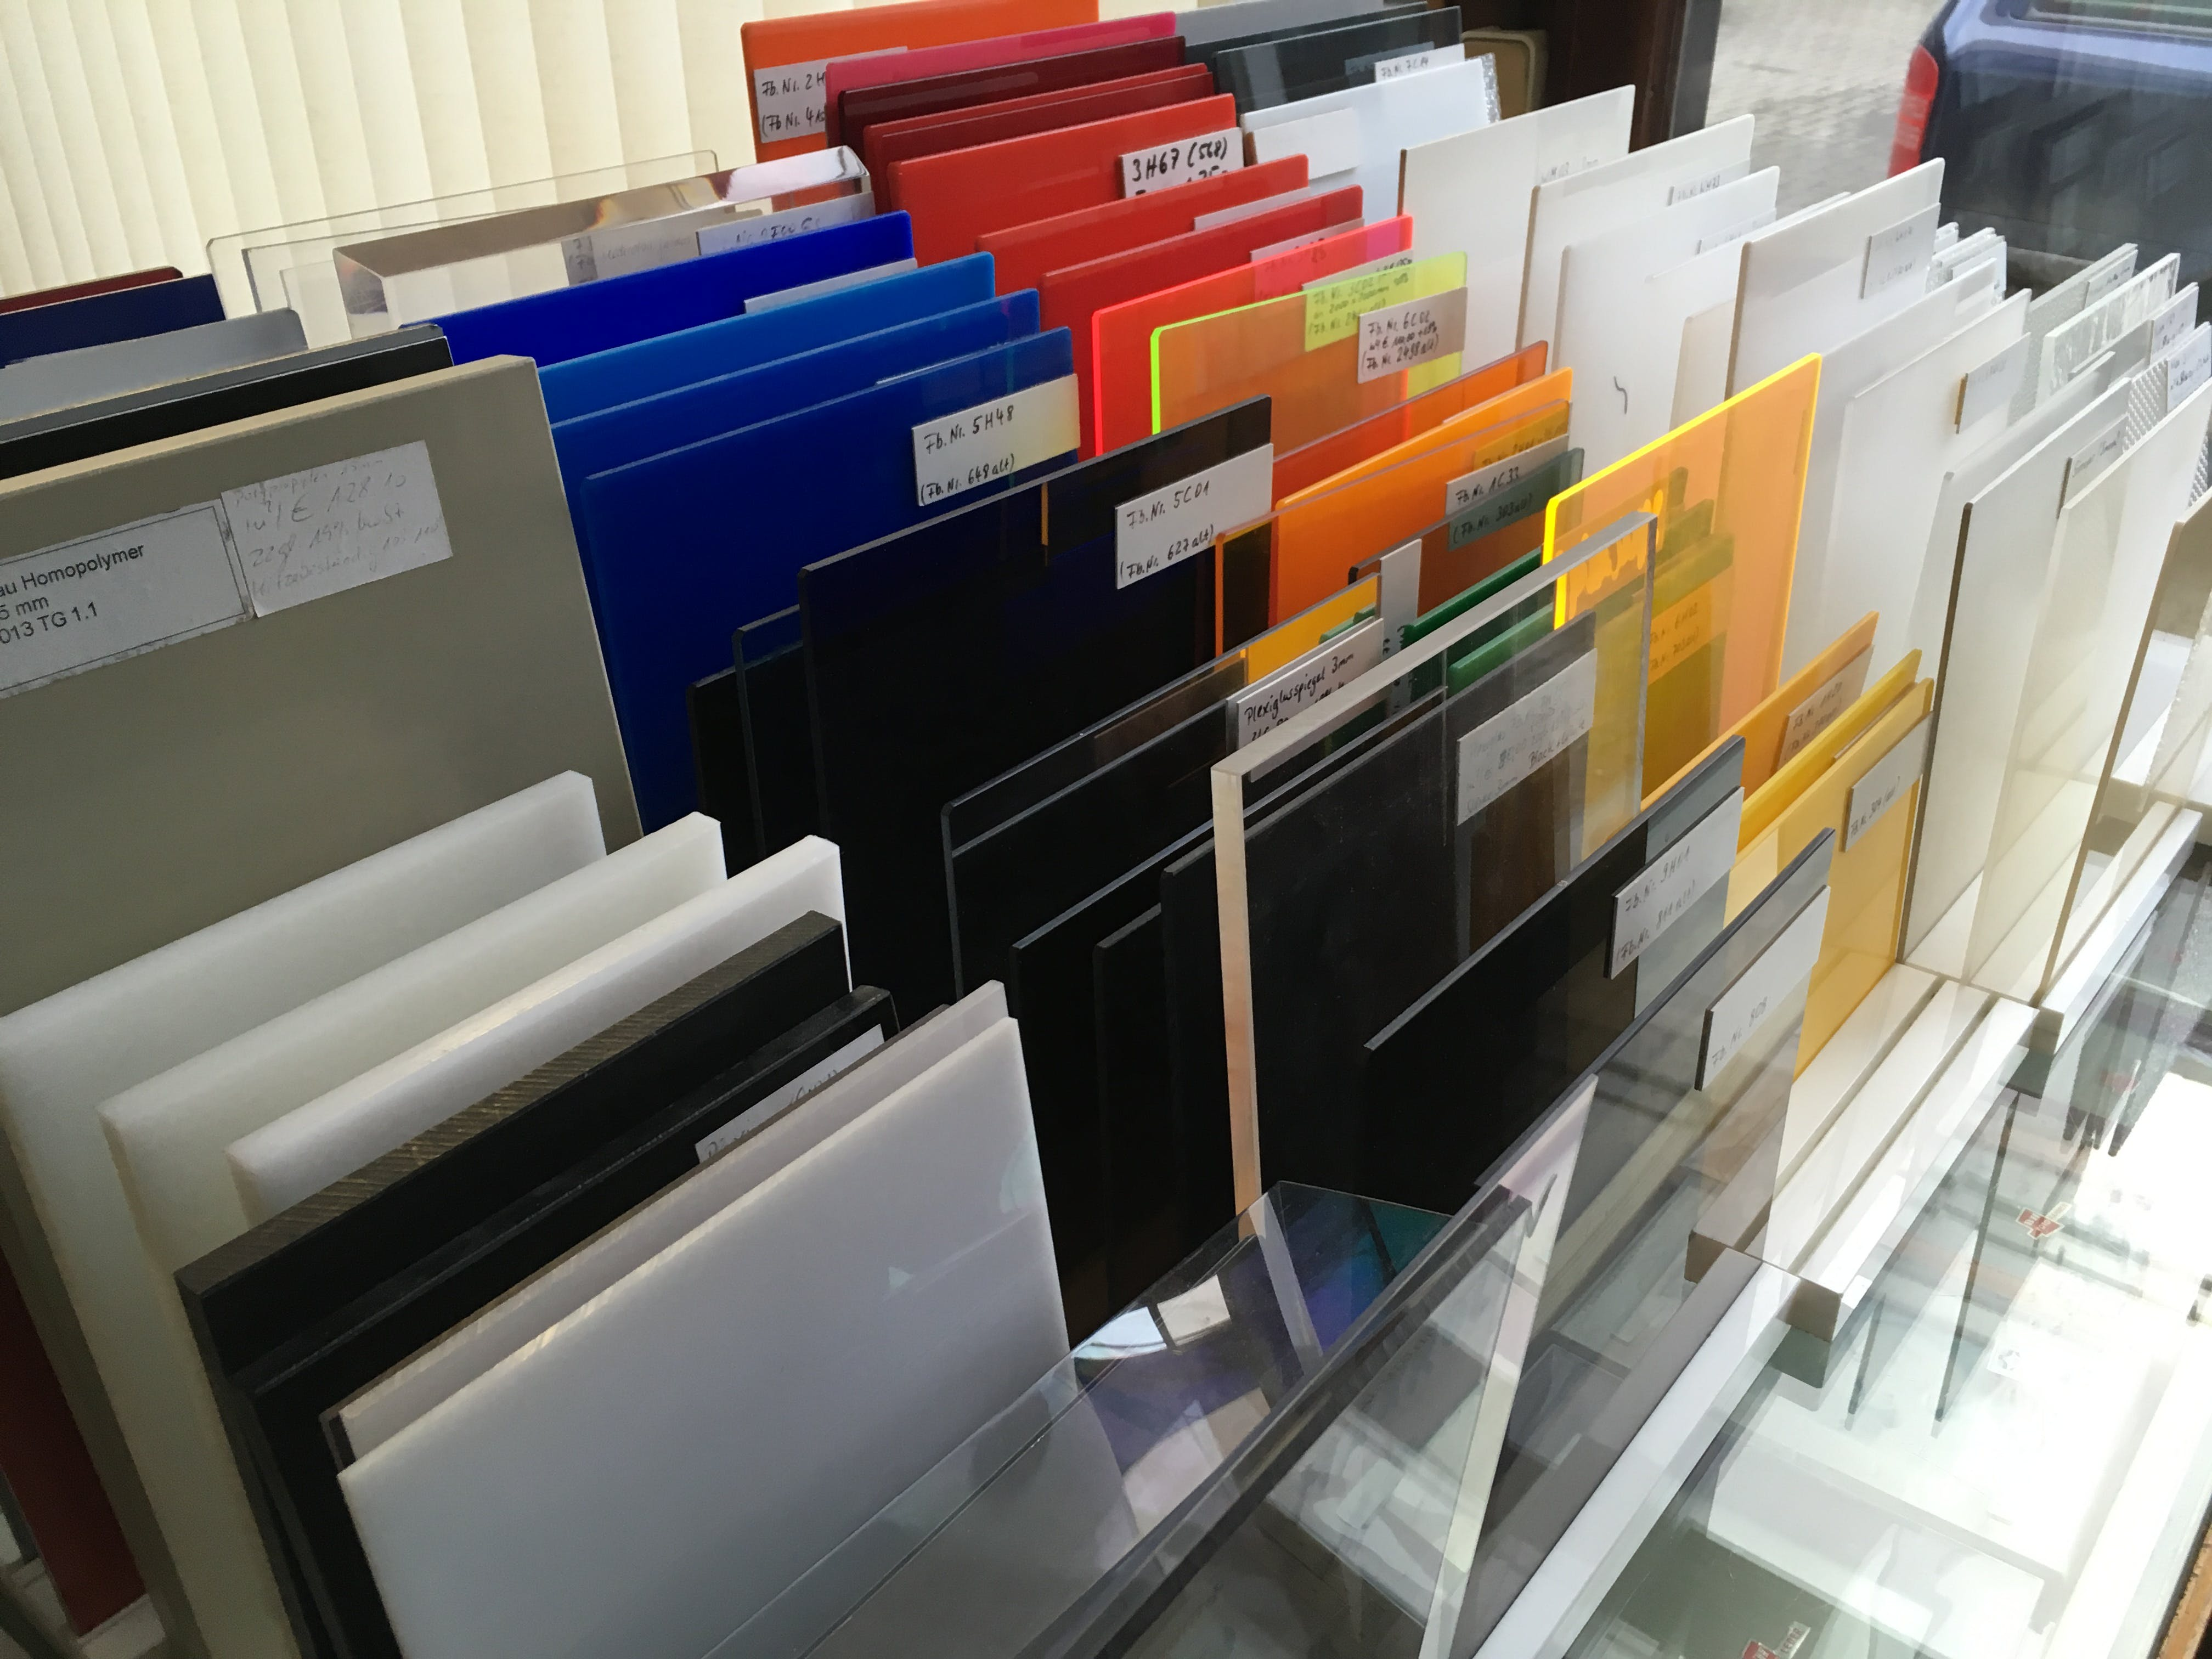 Visiting the local Plexi dealer to choose the right material for the cube